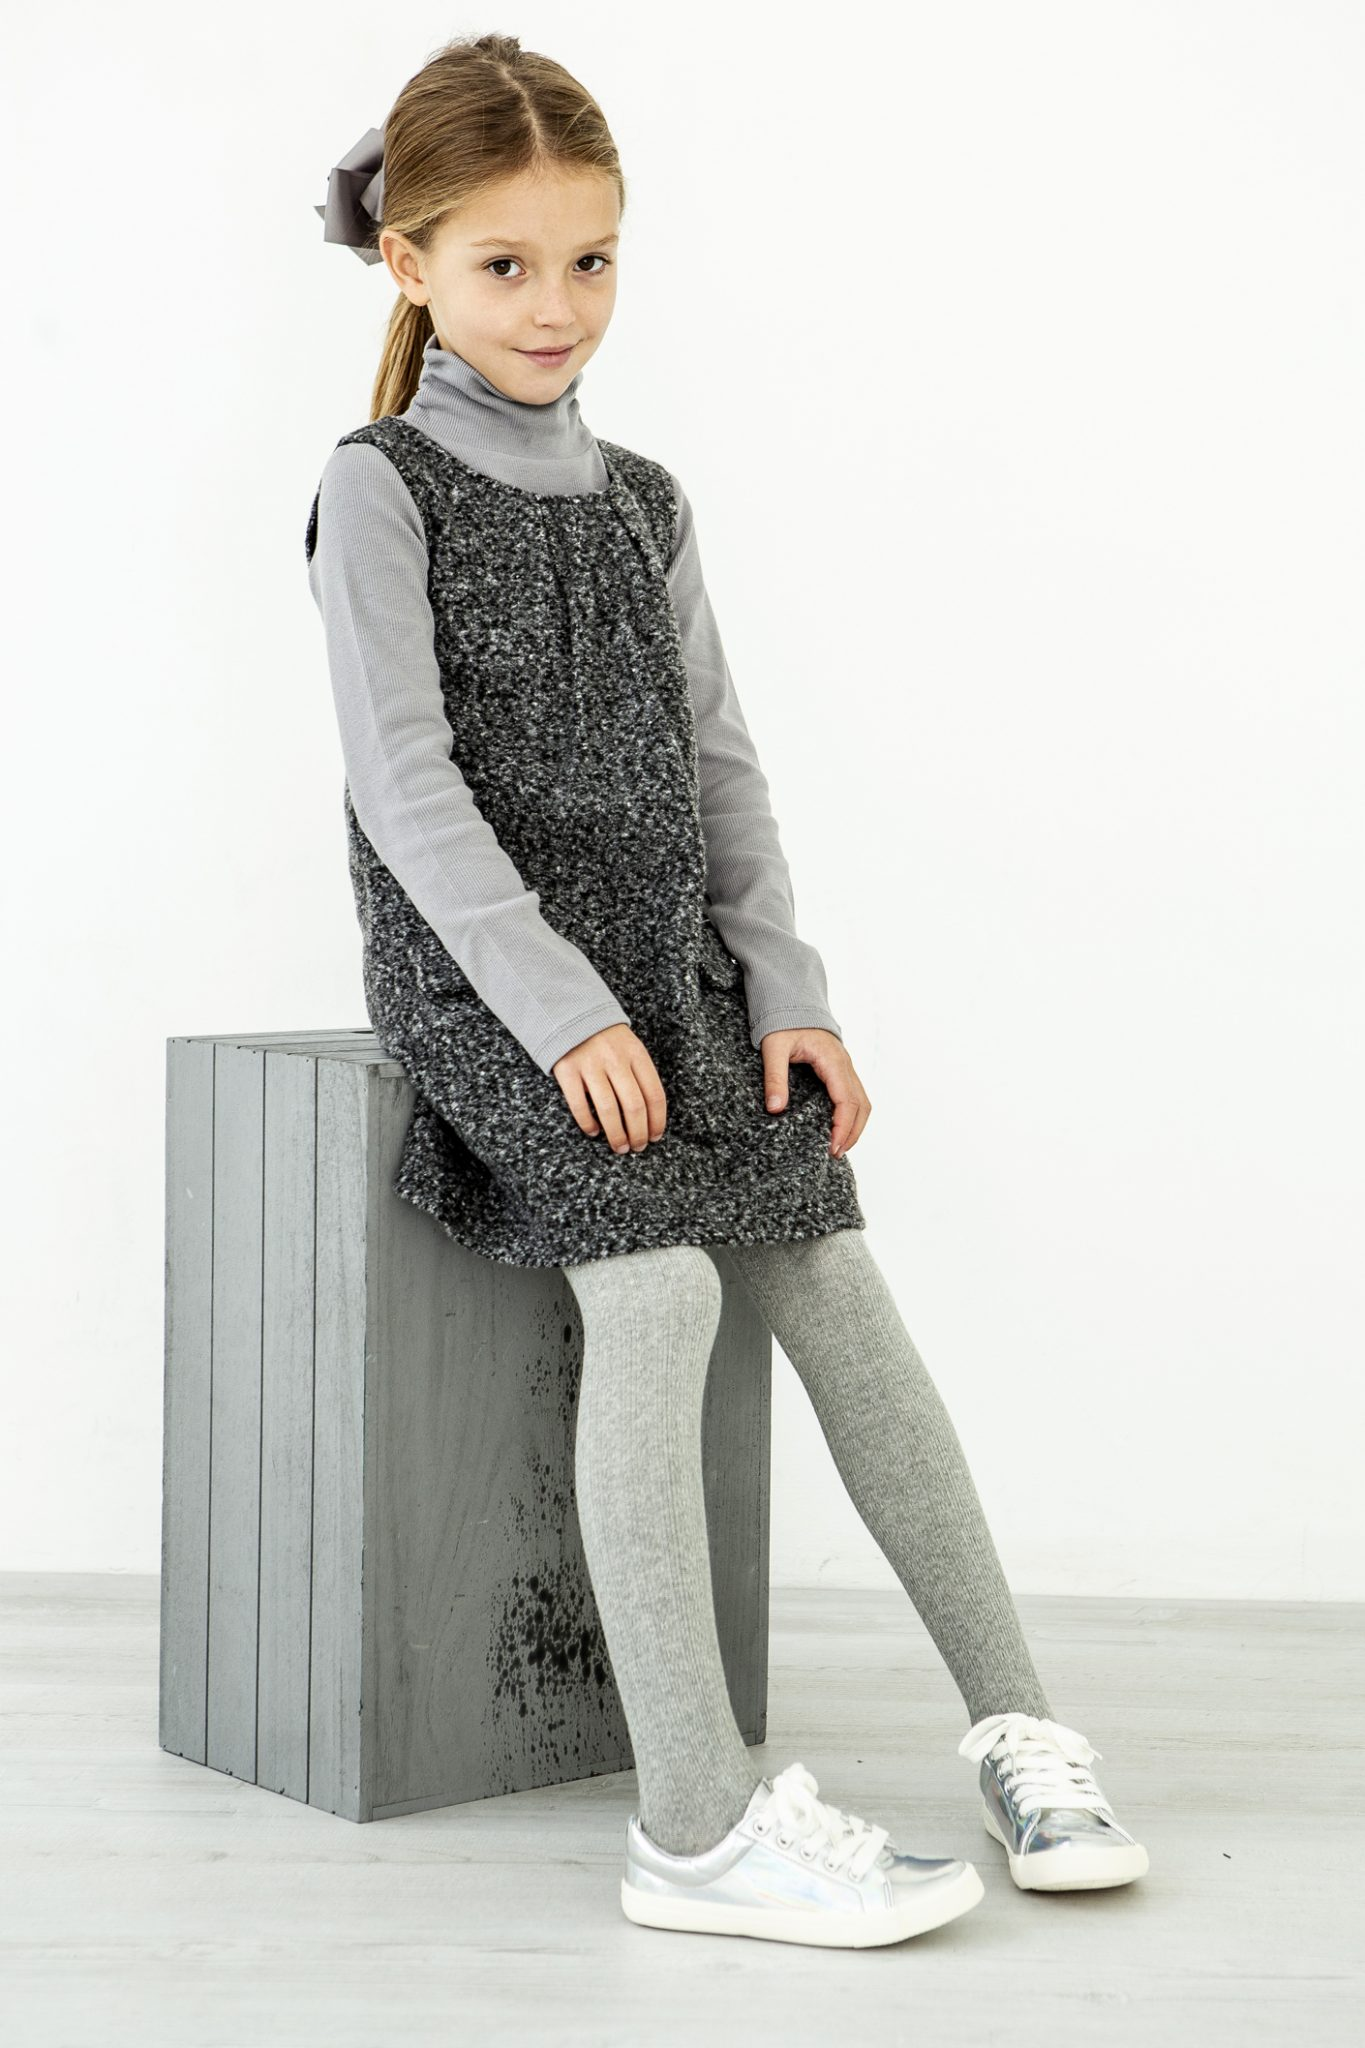 fashion-photography-for-kids-clothing-in-manchester